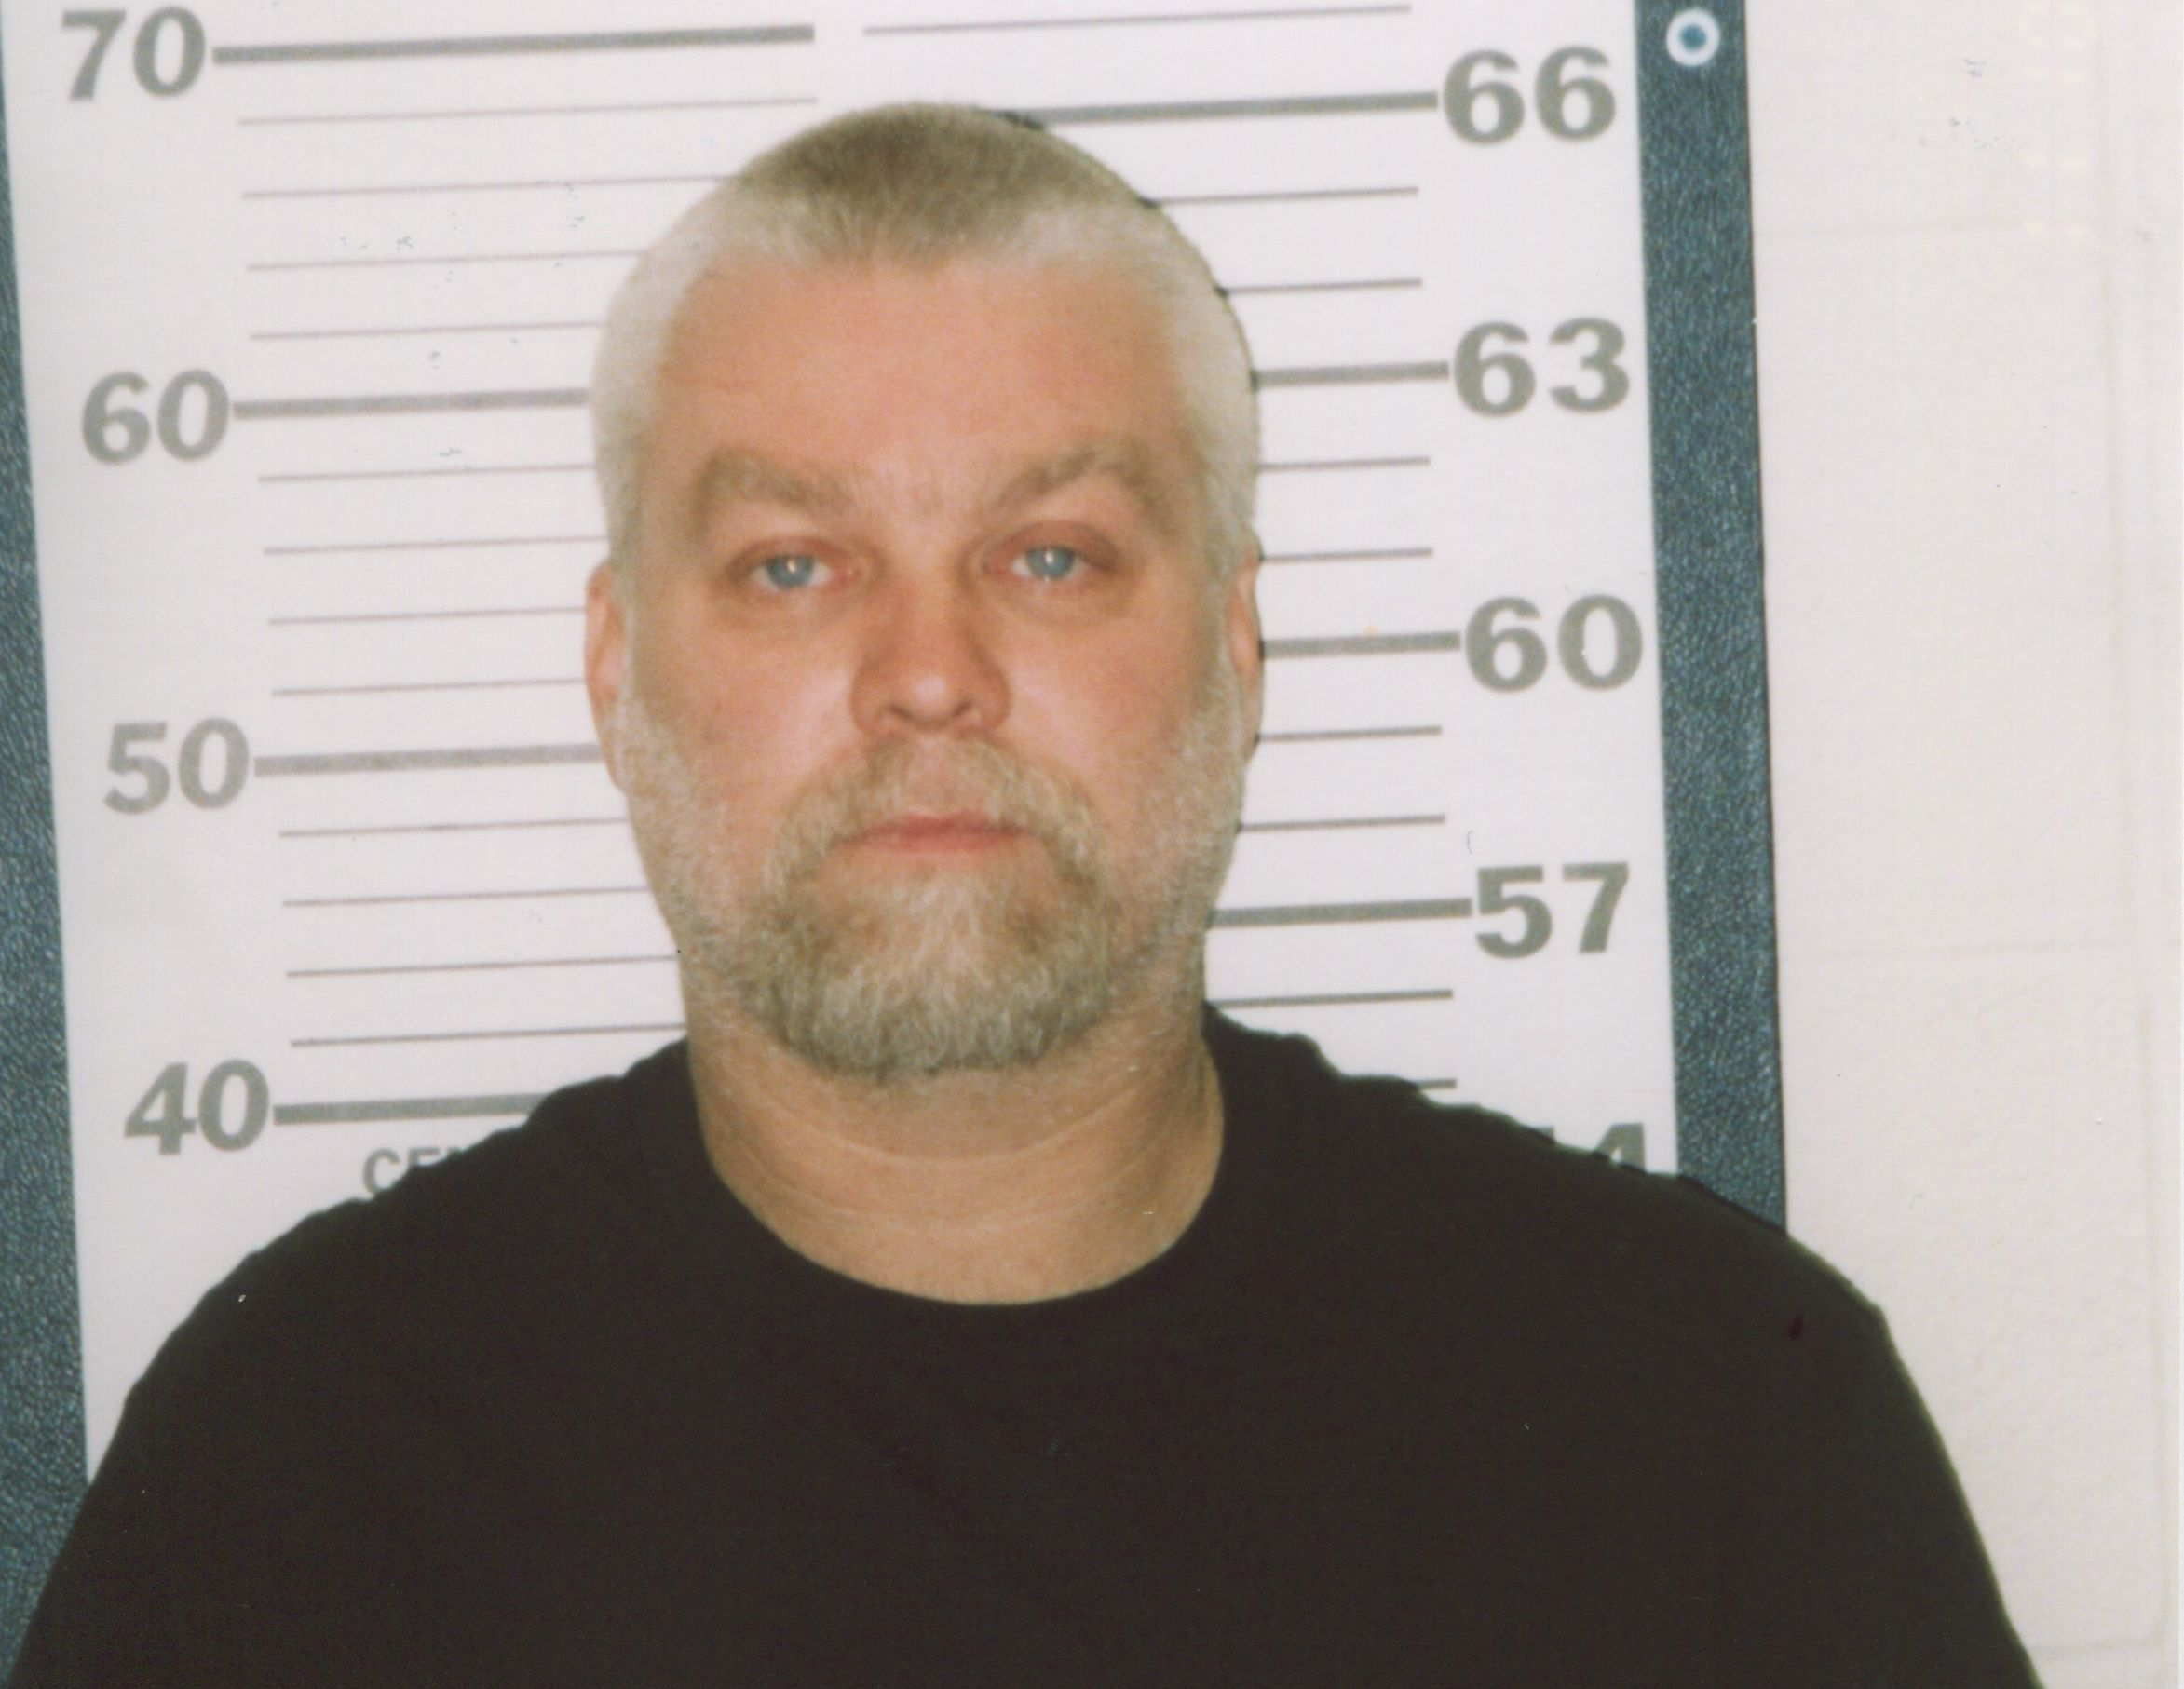 Steven Avery attorney files new motion for appeal